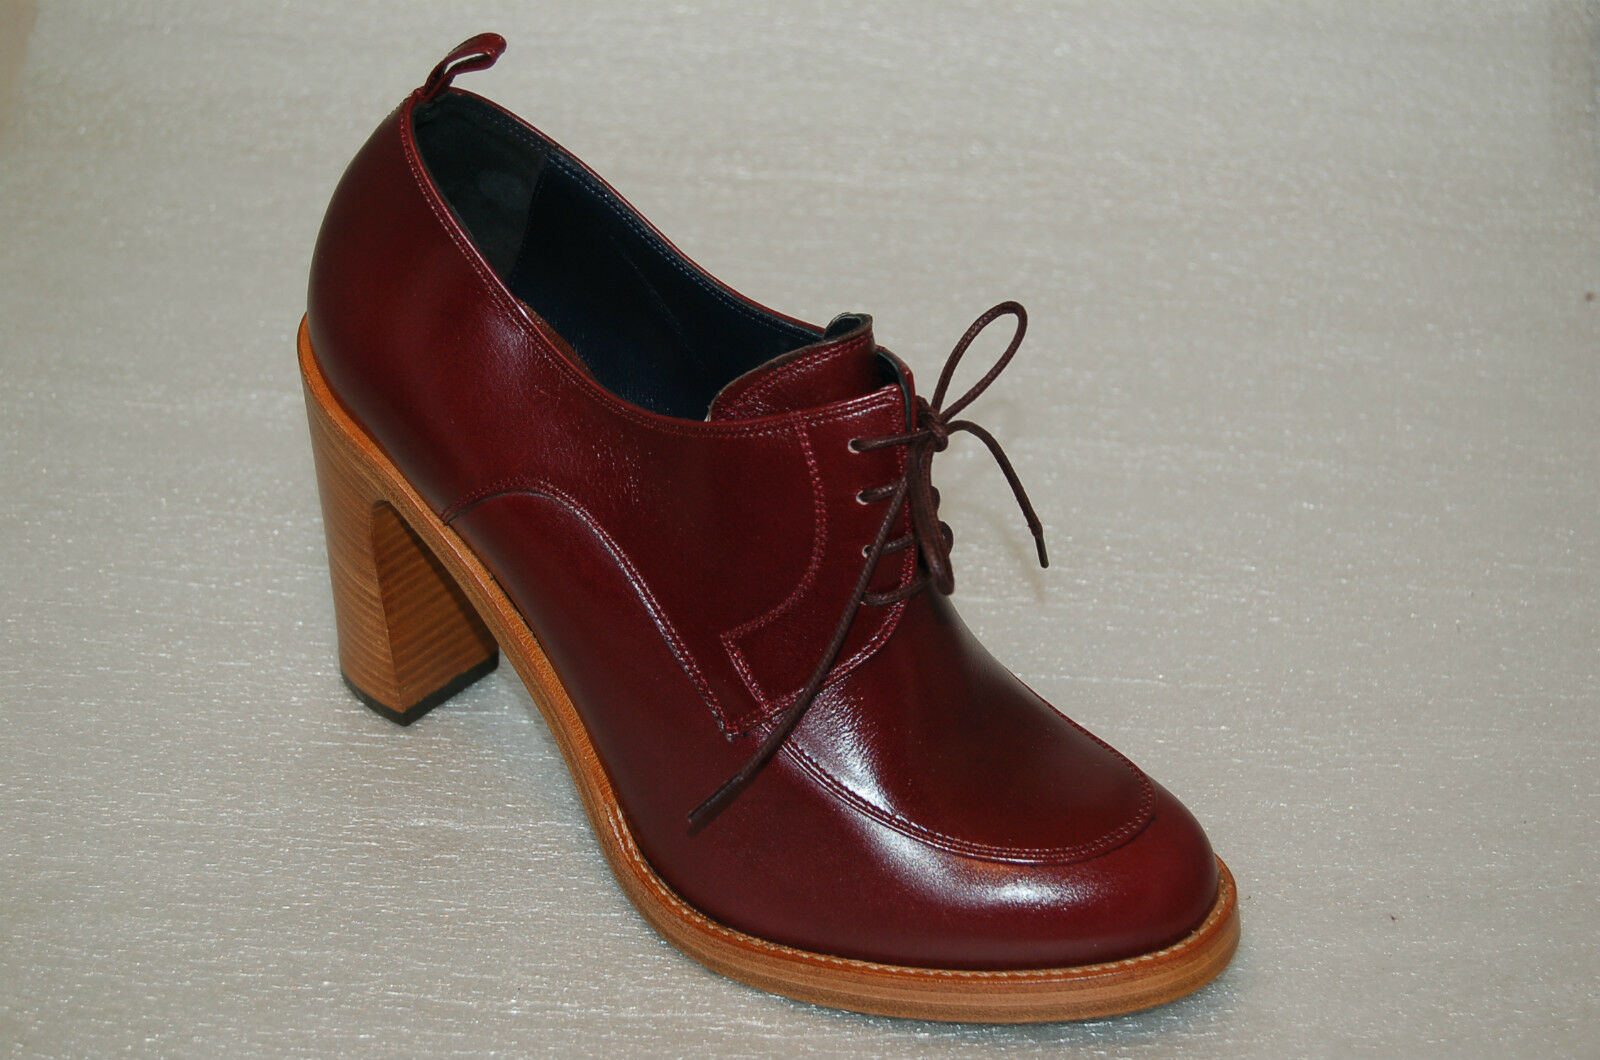 WOMAN - 39½ 39½ 39½ - LACEUP DERBY -BURGUNDY ROANO CALF - HEEL H.9cm - LEATHER SOLE 67d815